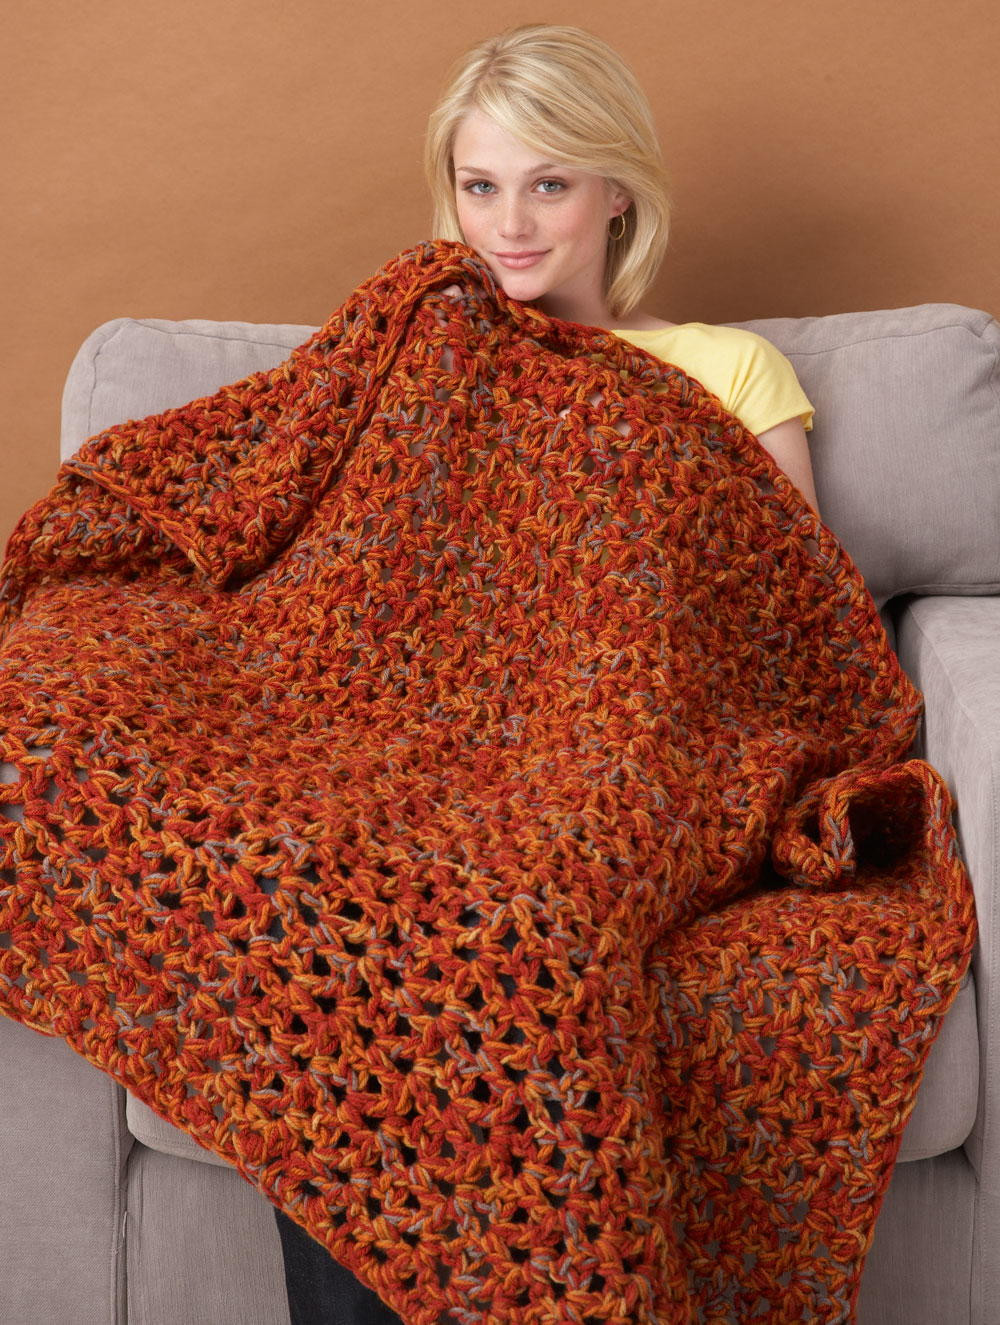 Elegant 31 Crochet Afghan Patterns for Fall All Free Crochet Afghan Patterns Of New 48 Pics All Free Crochet Afghan Patterns